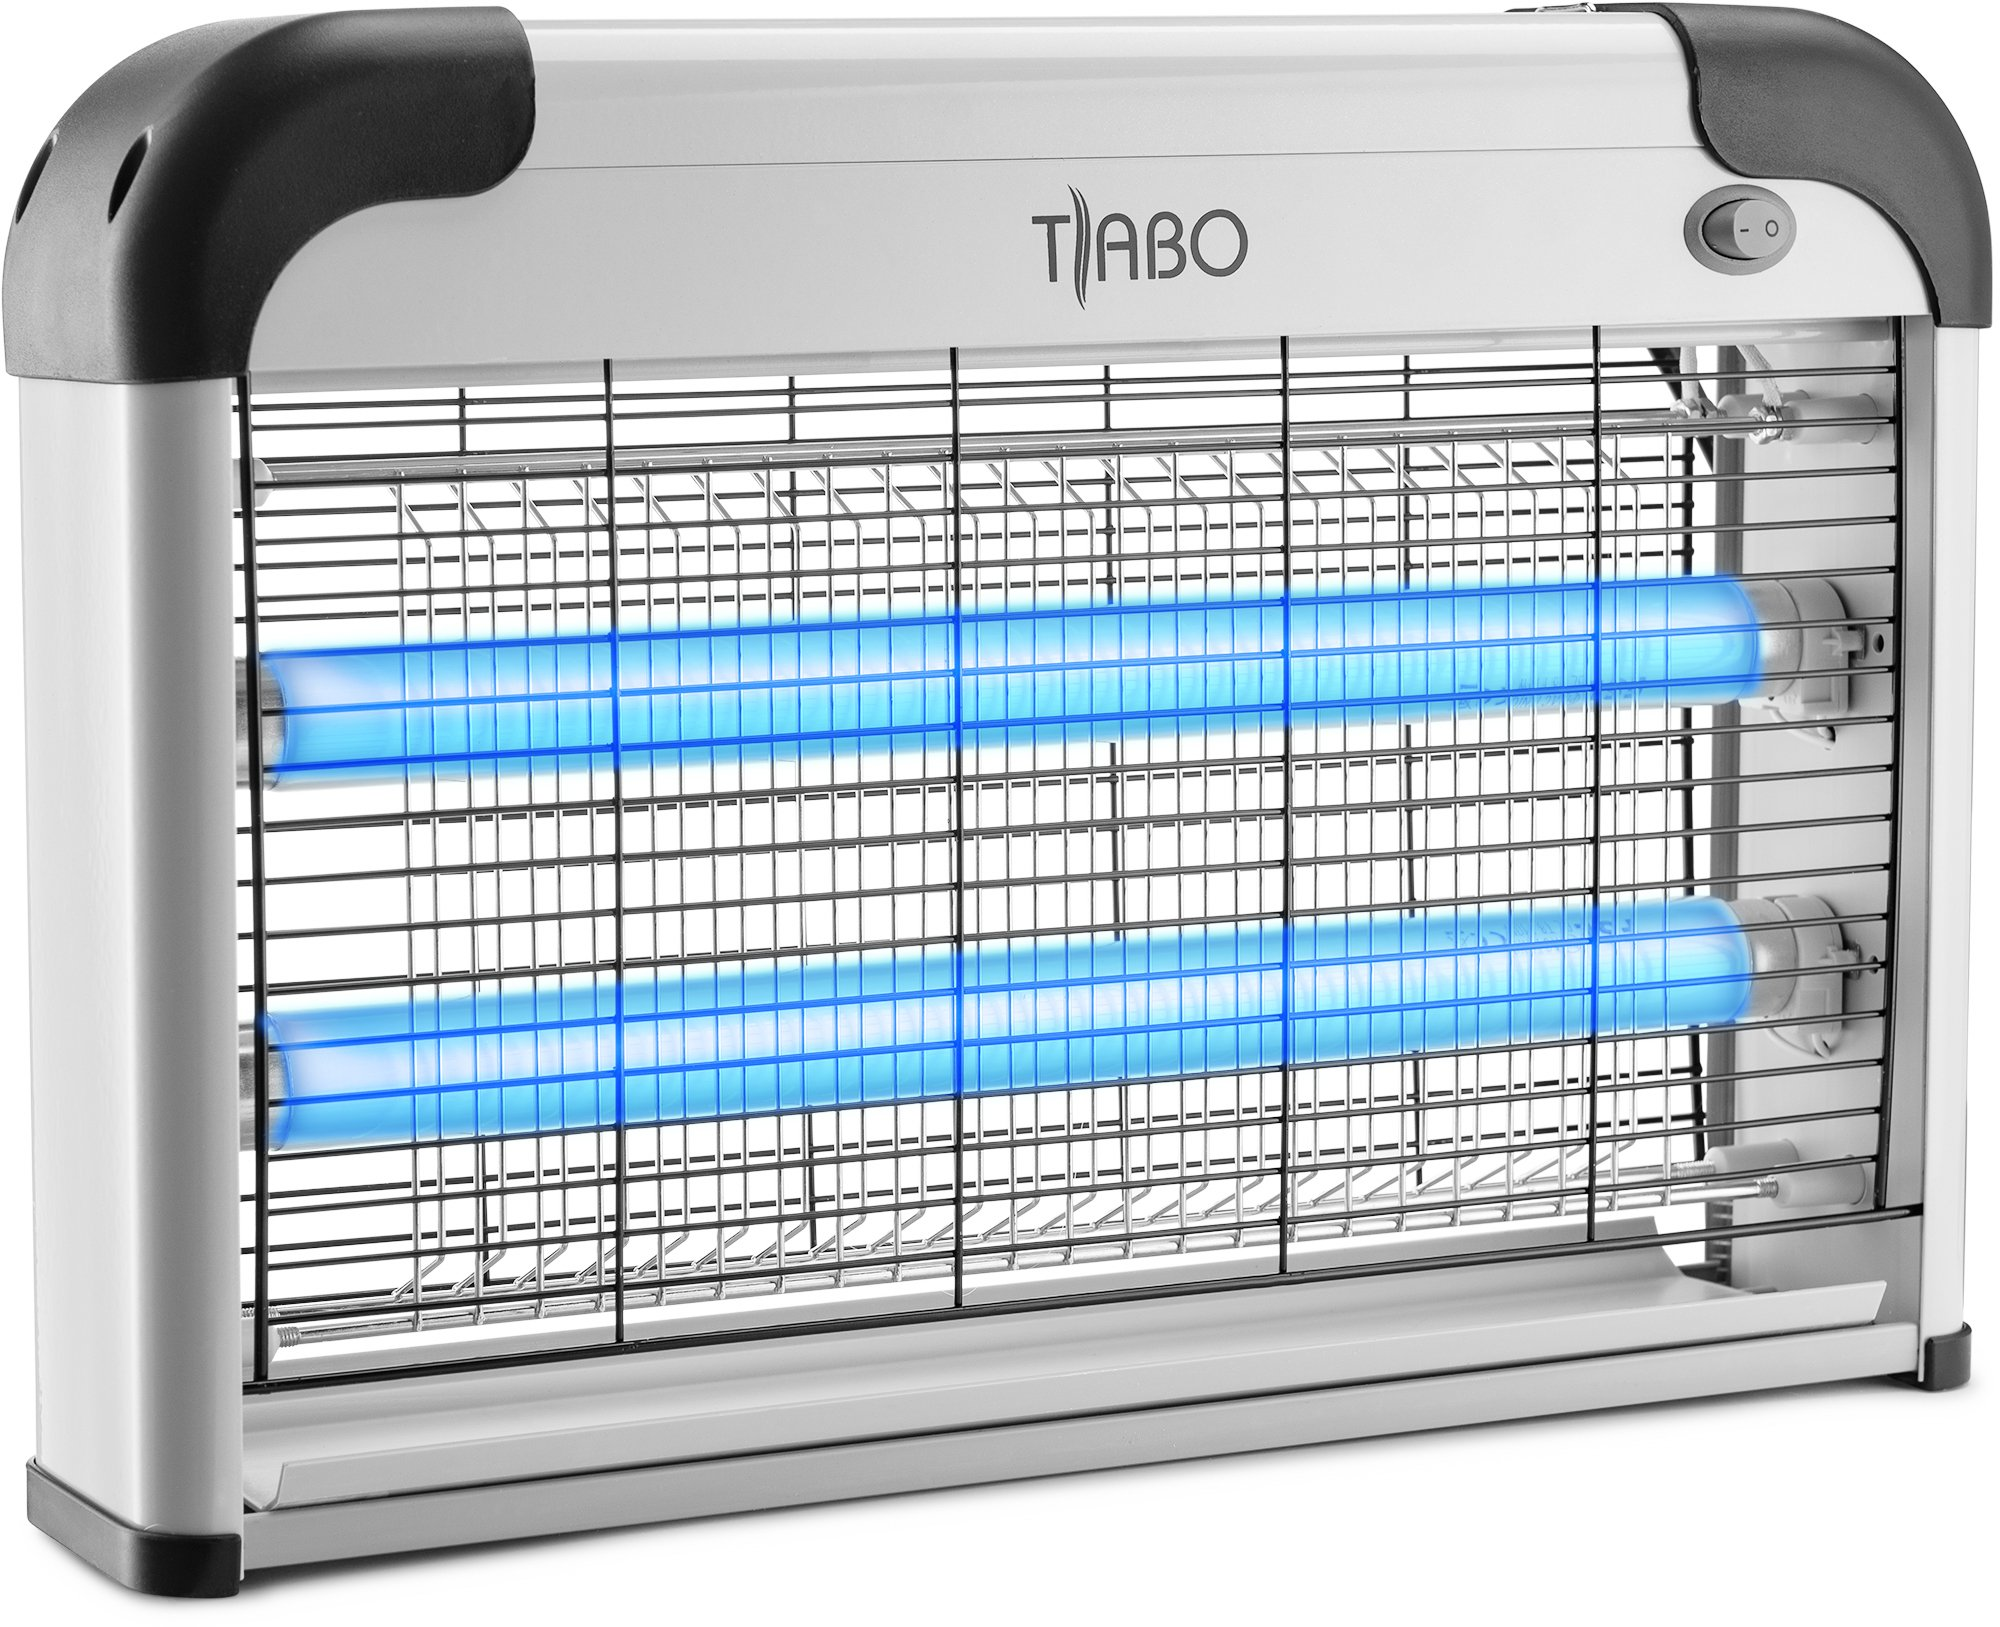 Tiabo Bug Zapper Indoor Insect Killer Electronics Mosquito, Fly, Bug or Any Pest Killer Zapper 20W Bulbs for Indoor Use